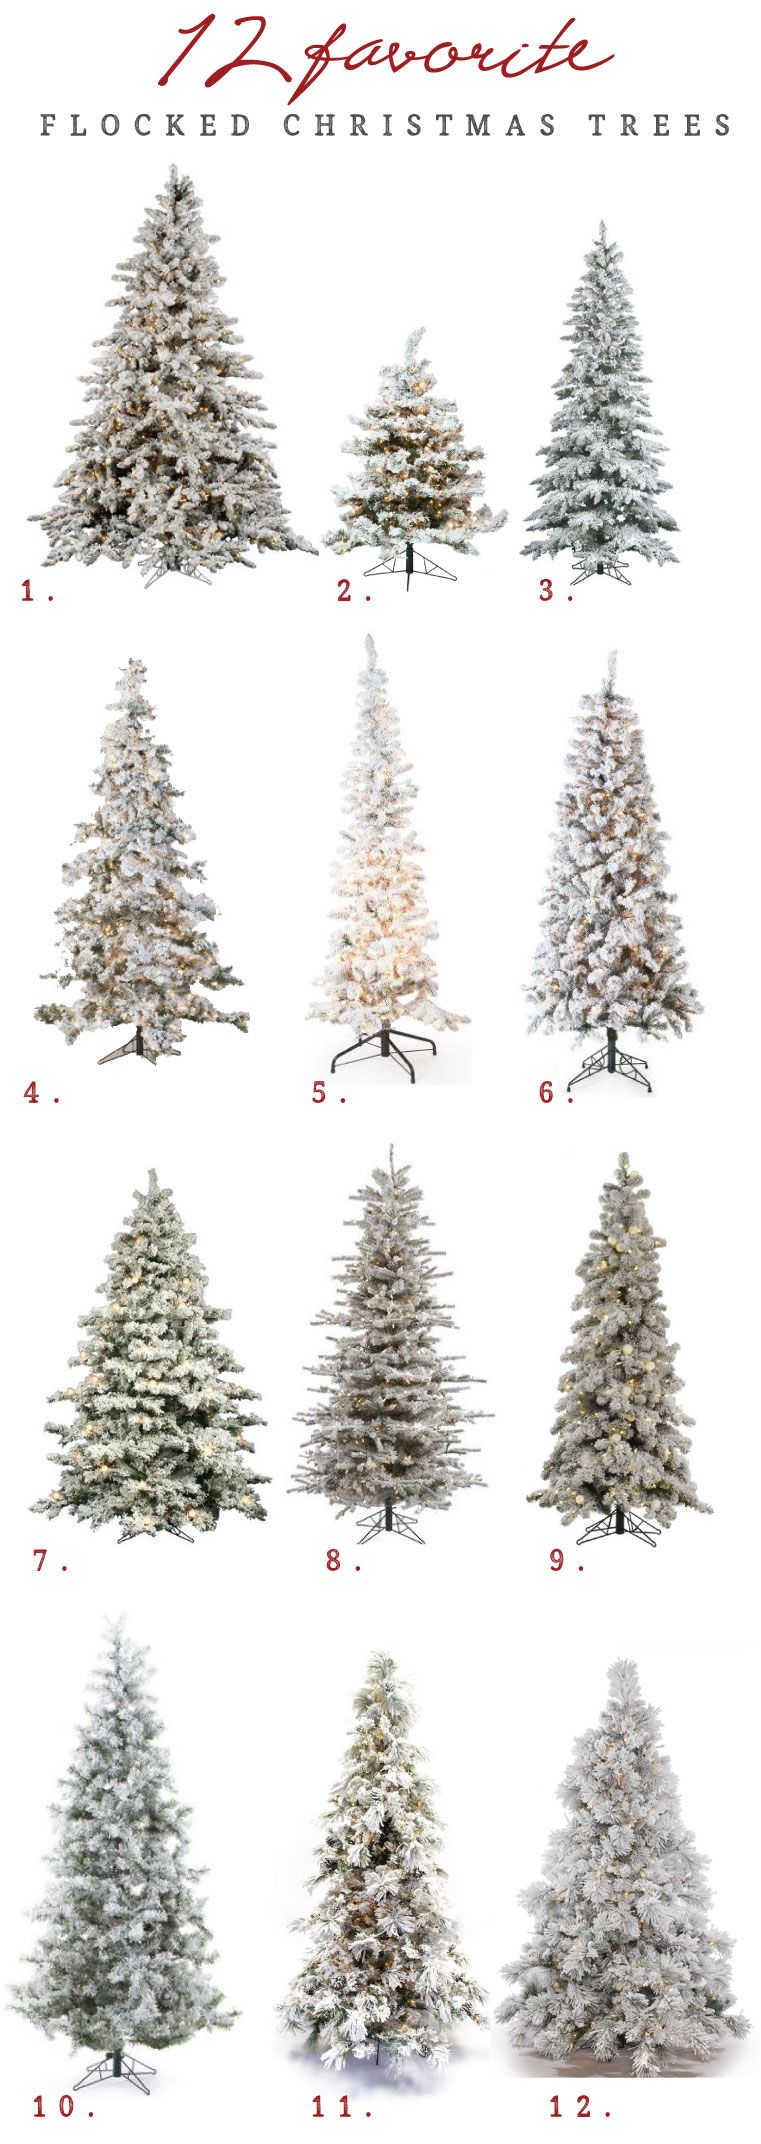 12 Of The Best Flocked Christmas Trees In Every Size Flocked Christmas Trees Decorated Cool Christmas Trees Slim Christmas Tree